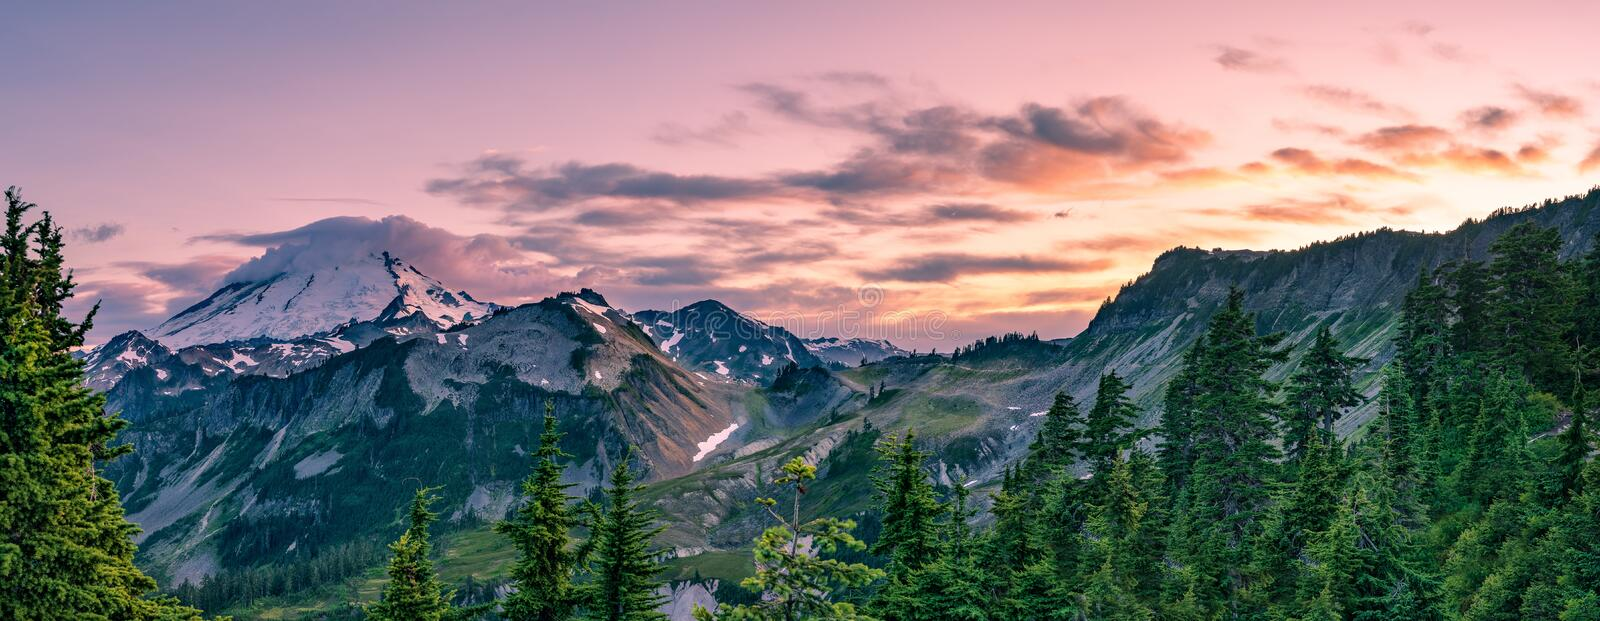 MT BAKER NATIONAL FOREST WA STATE. MT BAKER NATIONAL FOREST AT SUNSET PANO OF MT BAKER royalty free stock photo